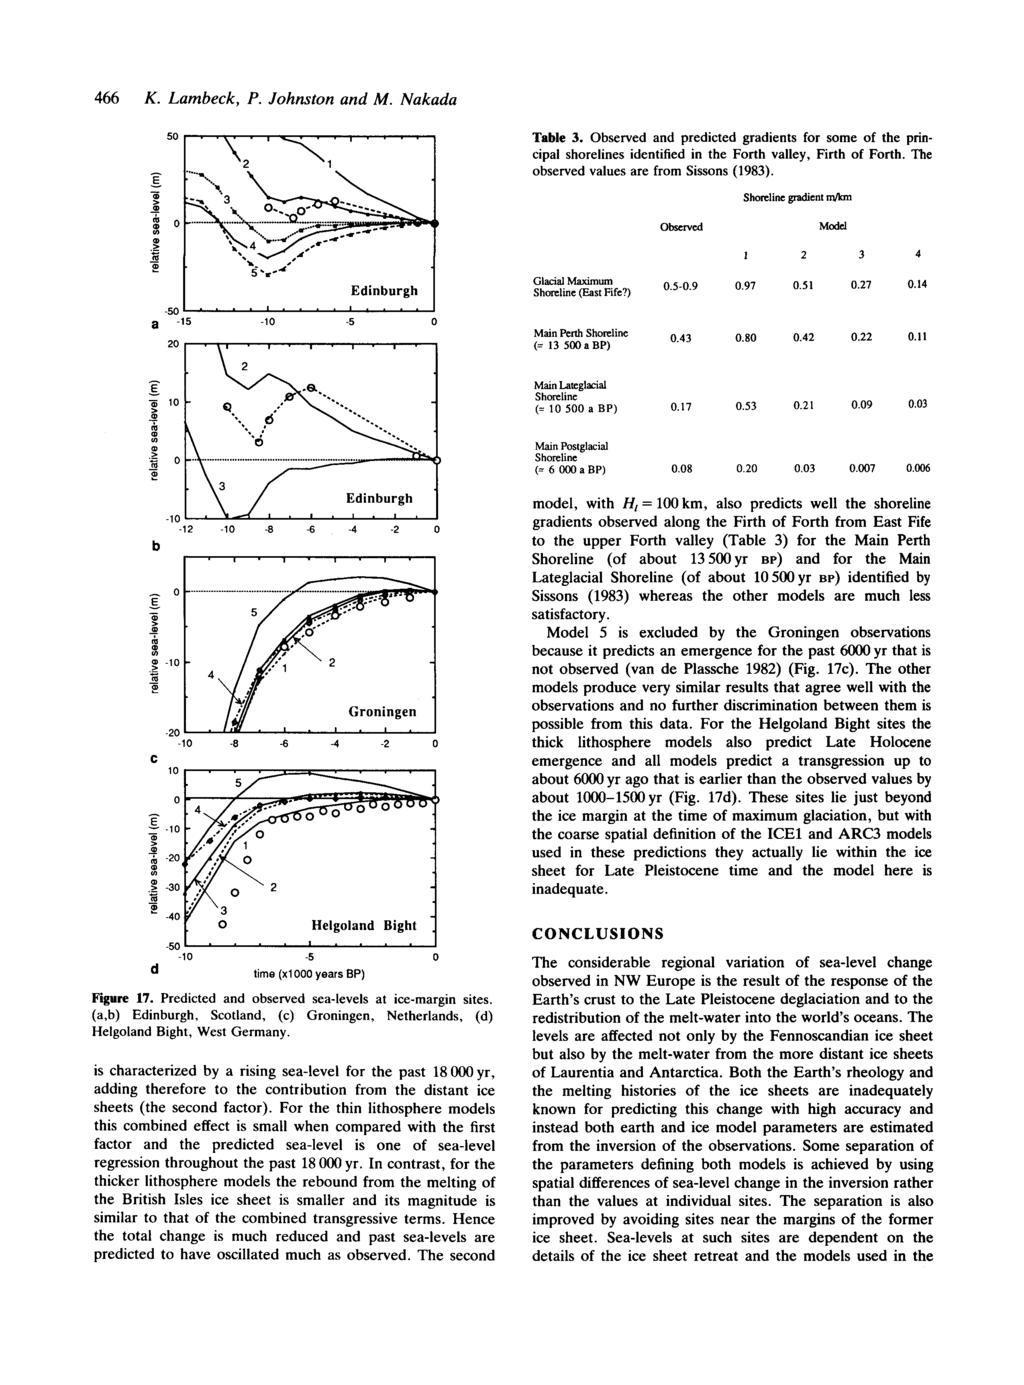 466 K. Lambeck, P. Johnston and M. Nakada 50..., 2 1 1 Table 3. Observed and predicted gradients for some of the principal shorelines identified in the Forth valley, Firth of Forth.